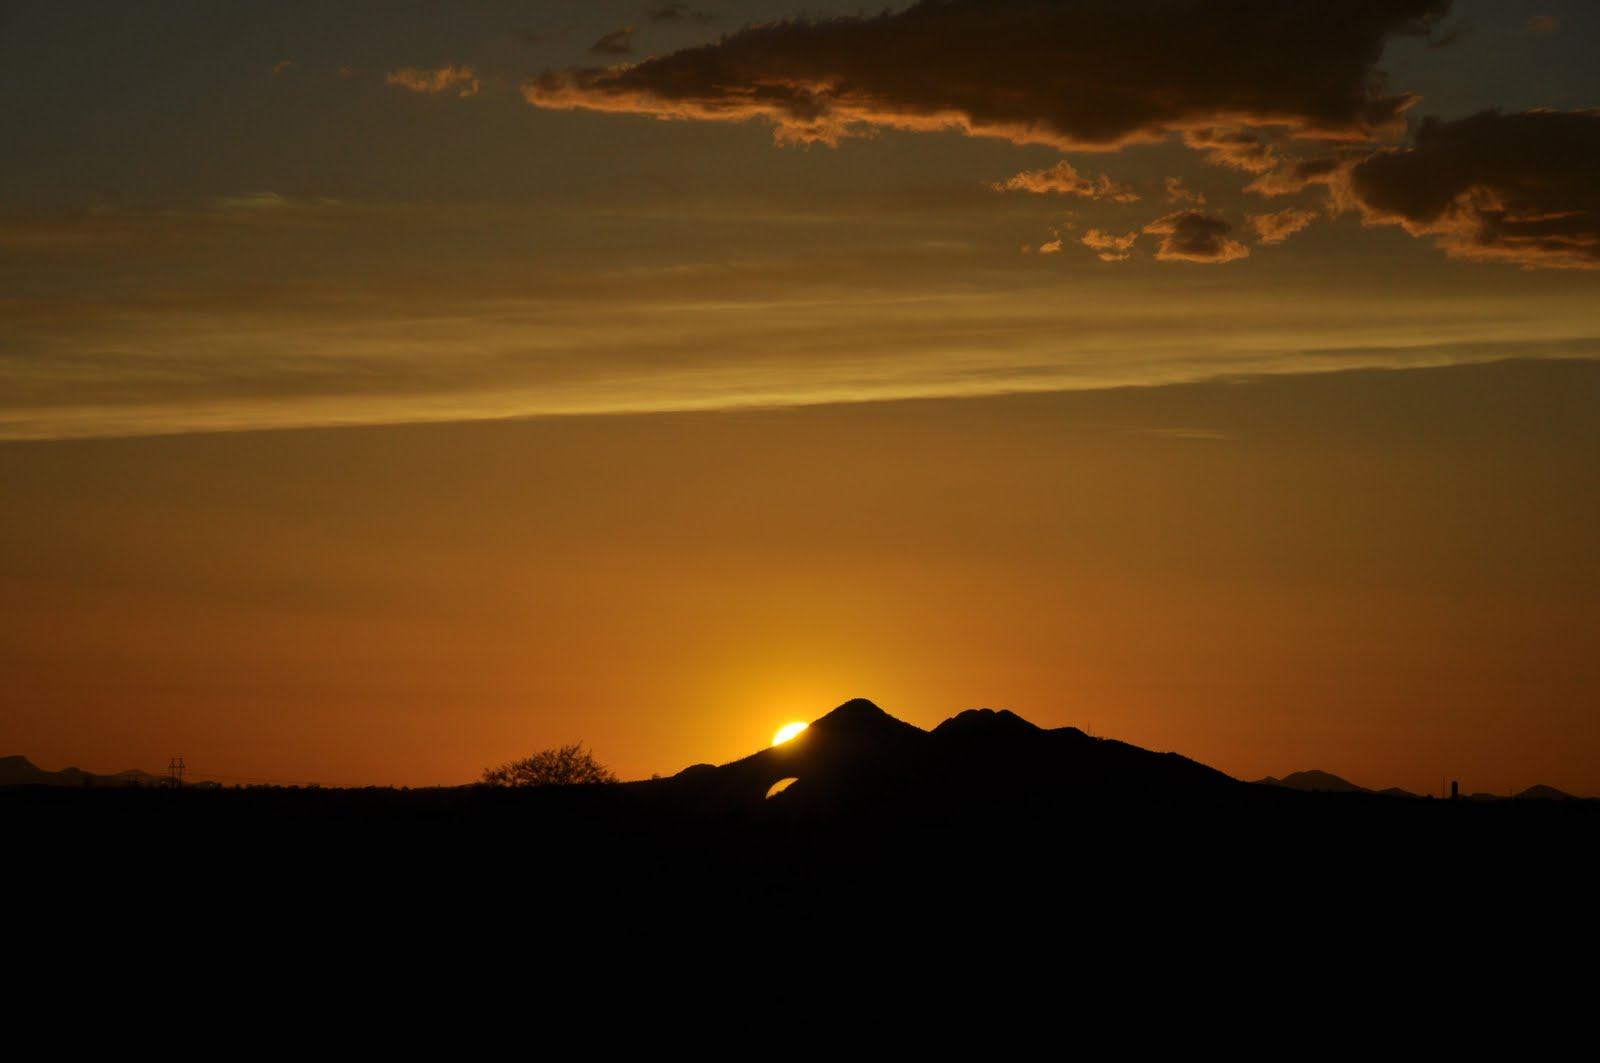 Desert Sunset Images - Reverse Search